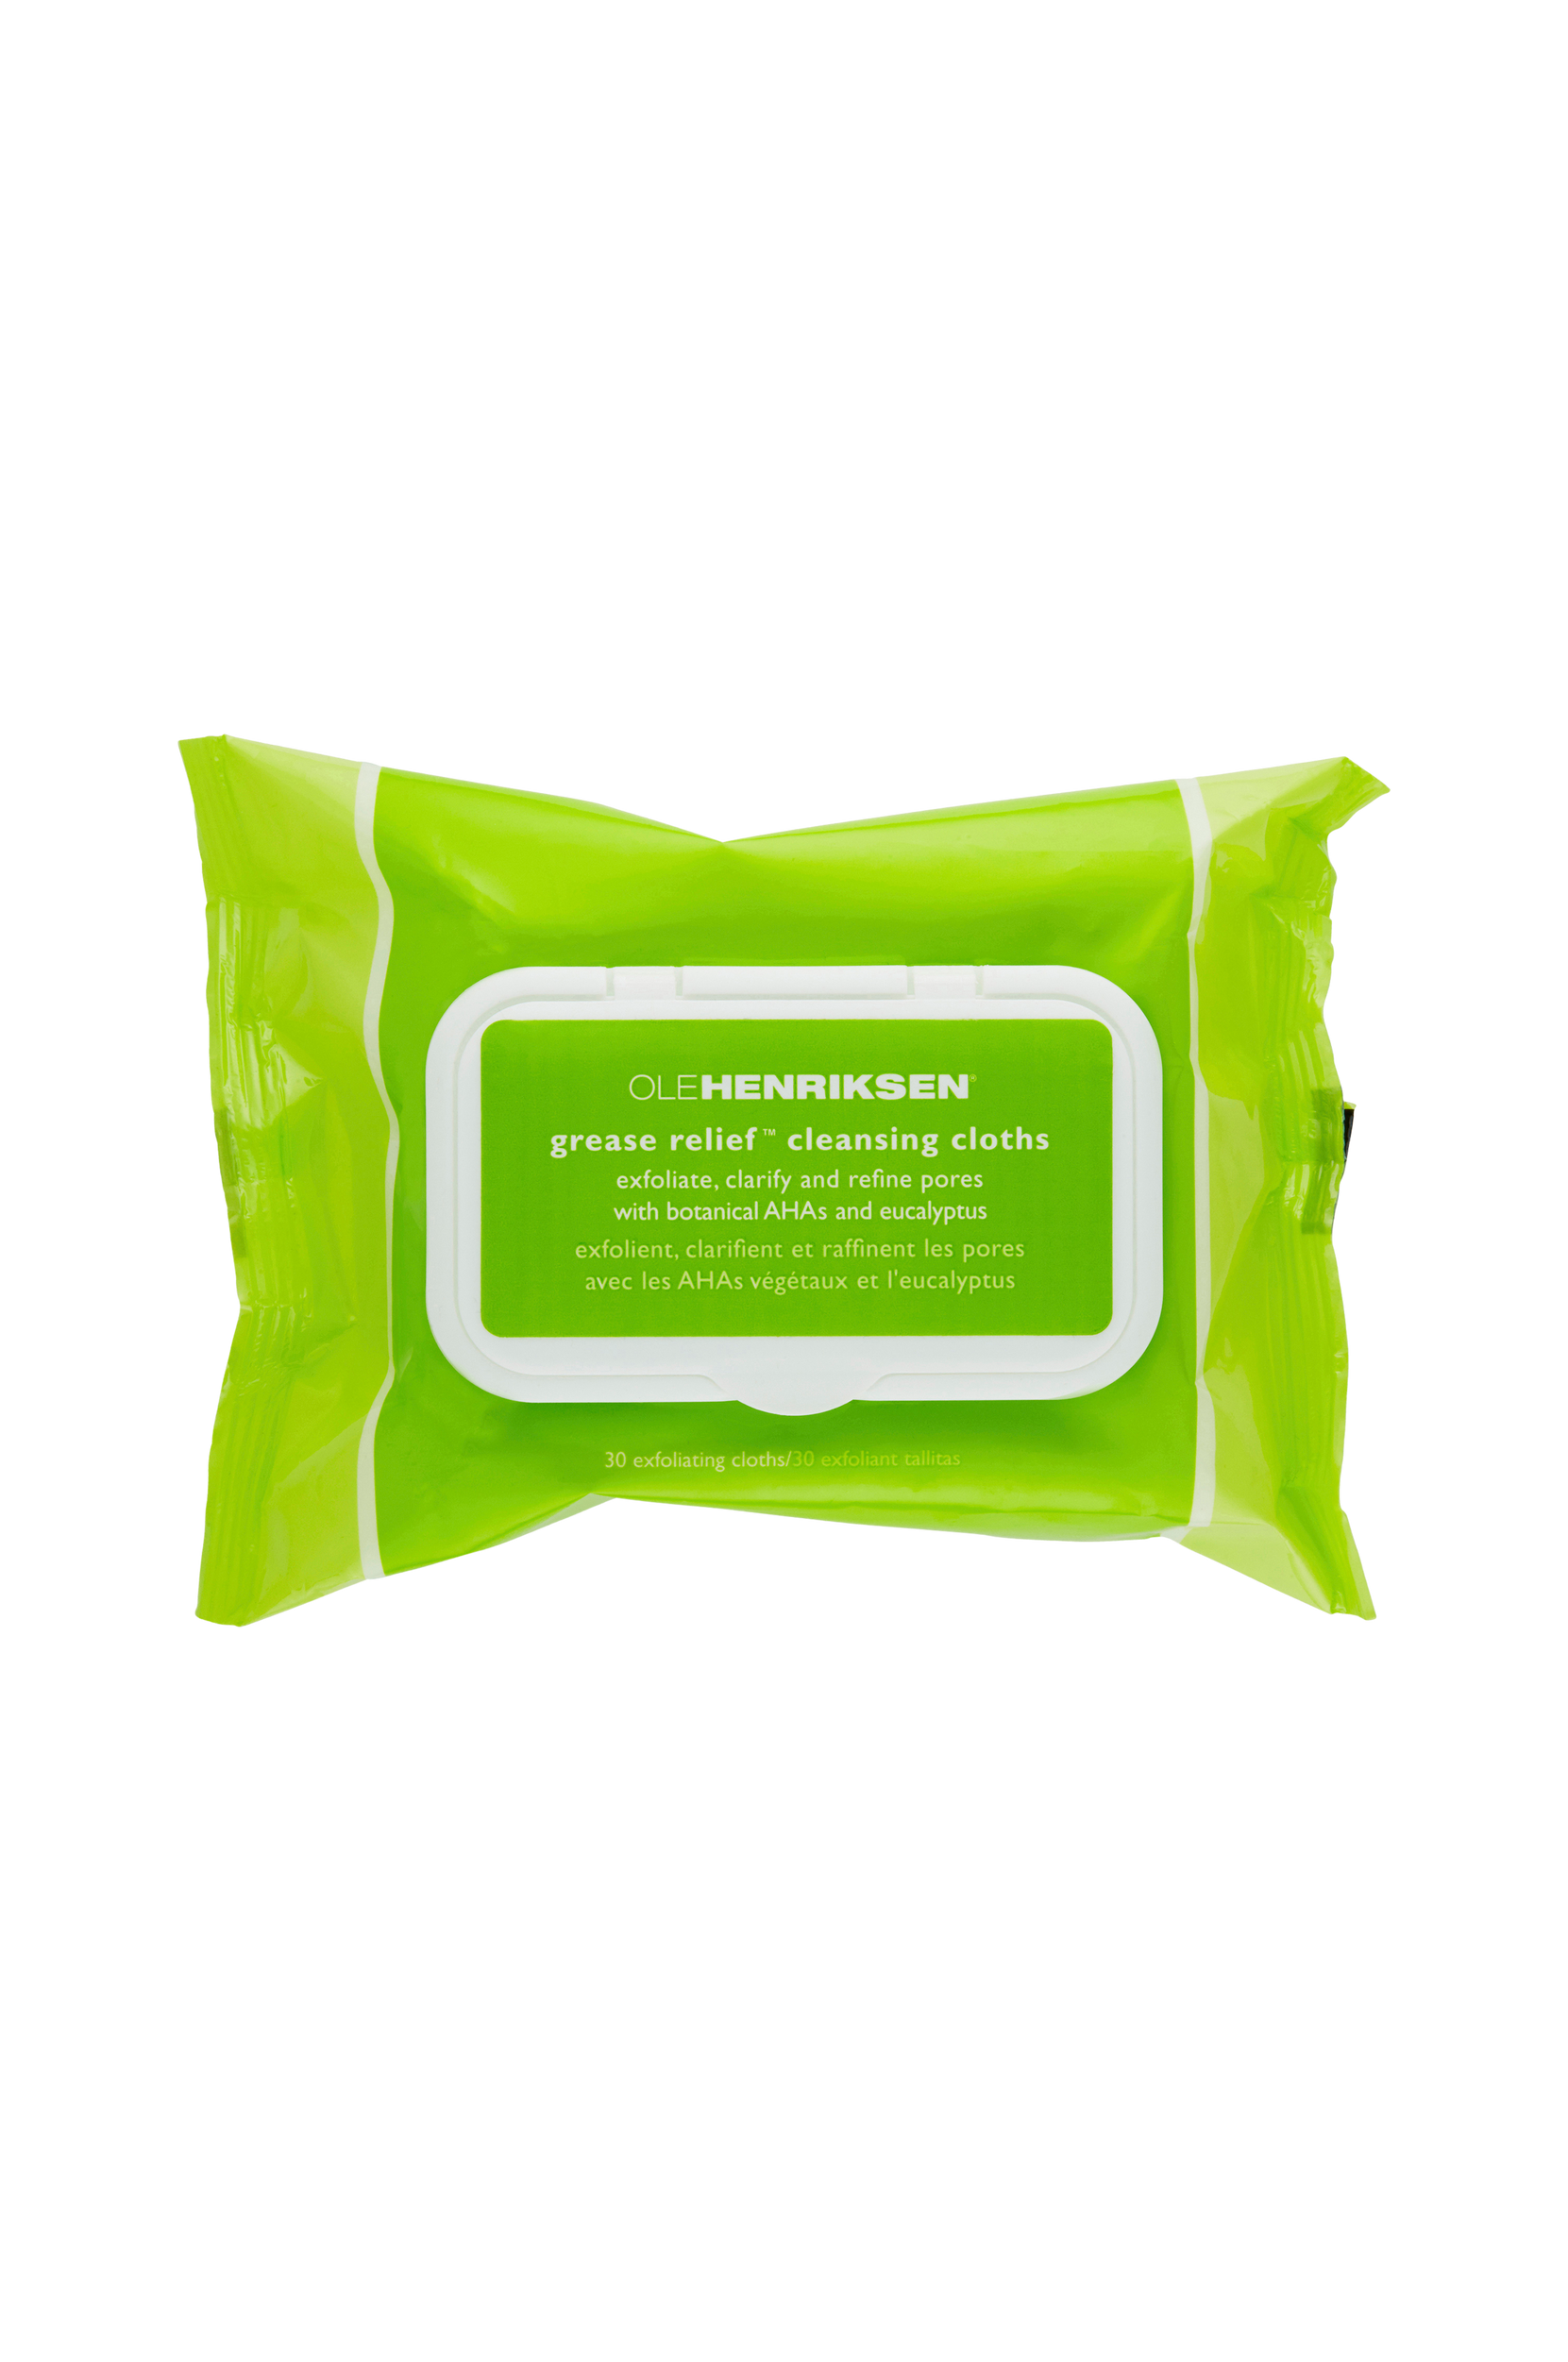 Grease Reliefi Cleansing Cloths